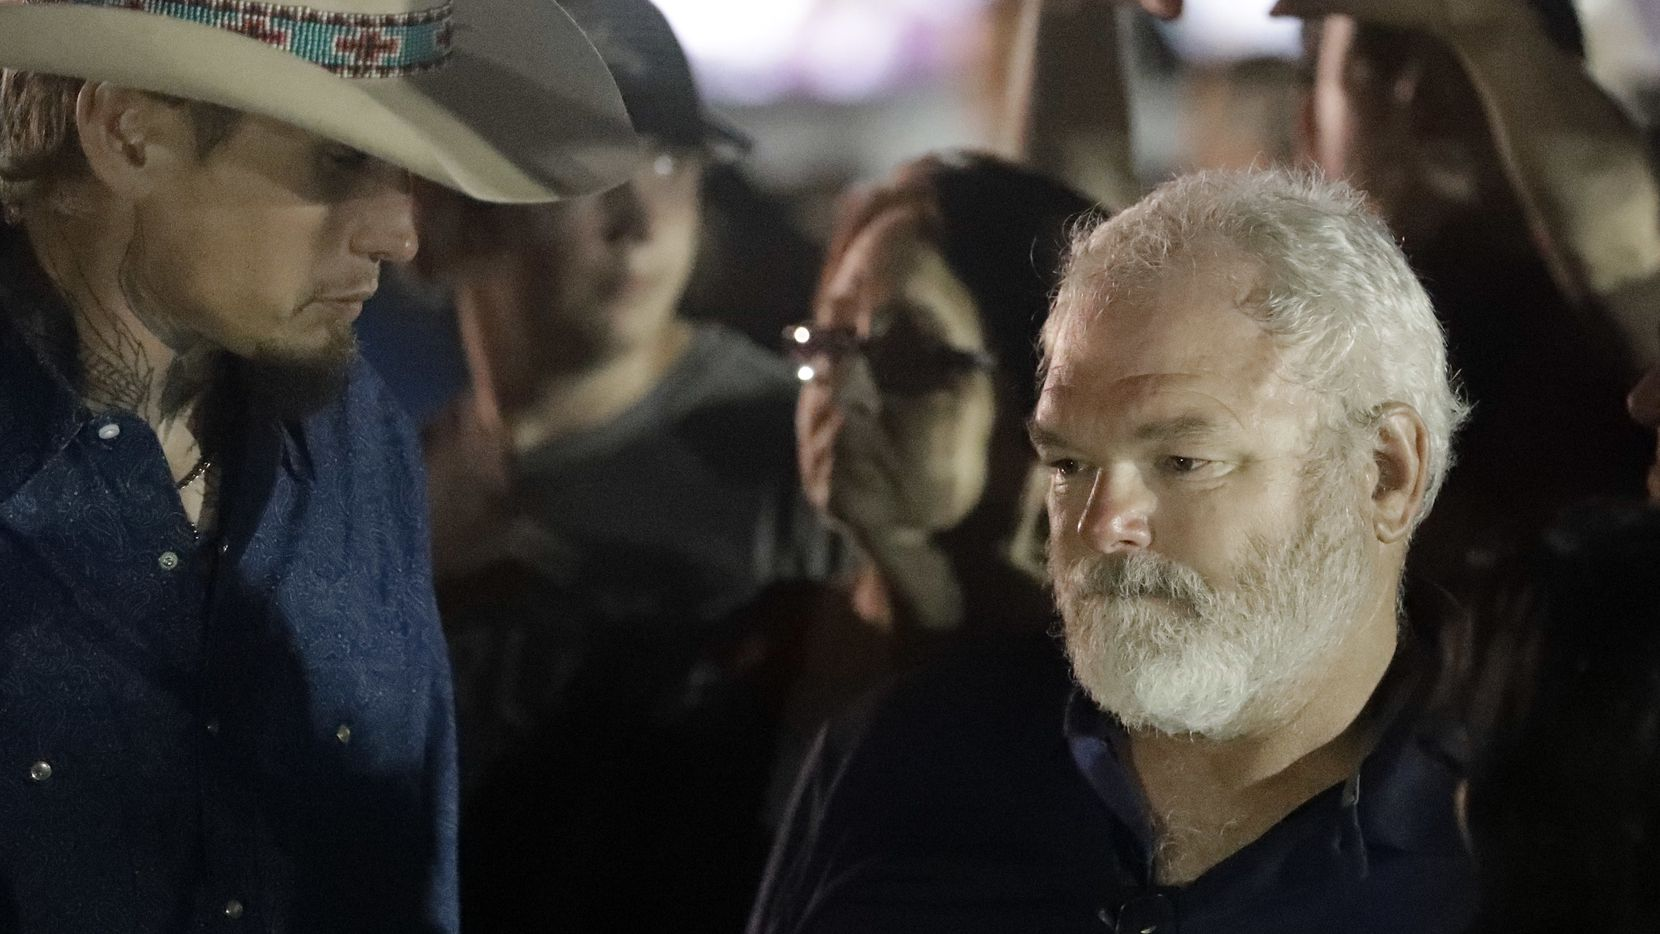 Stephen Willeford (right) and Johnnie Langendorff attend a vigil for the victims of the First Baptist Church shooting.